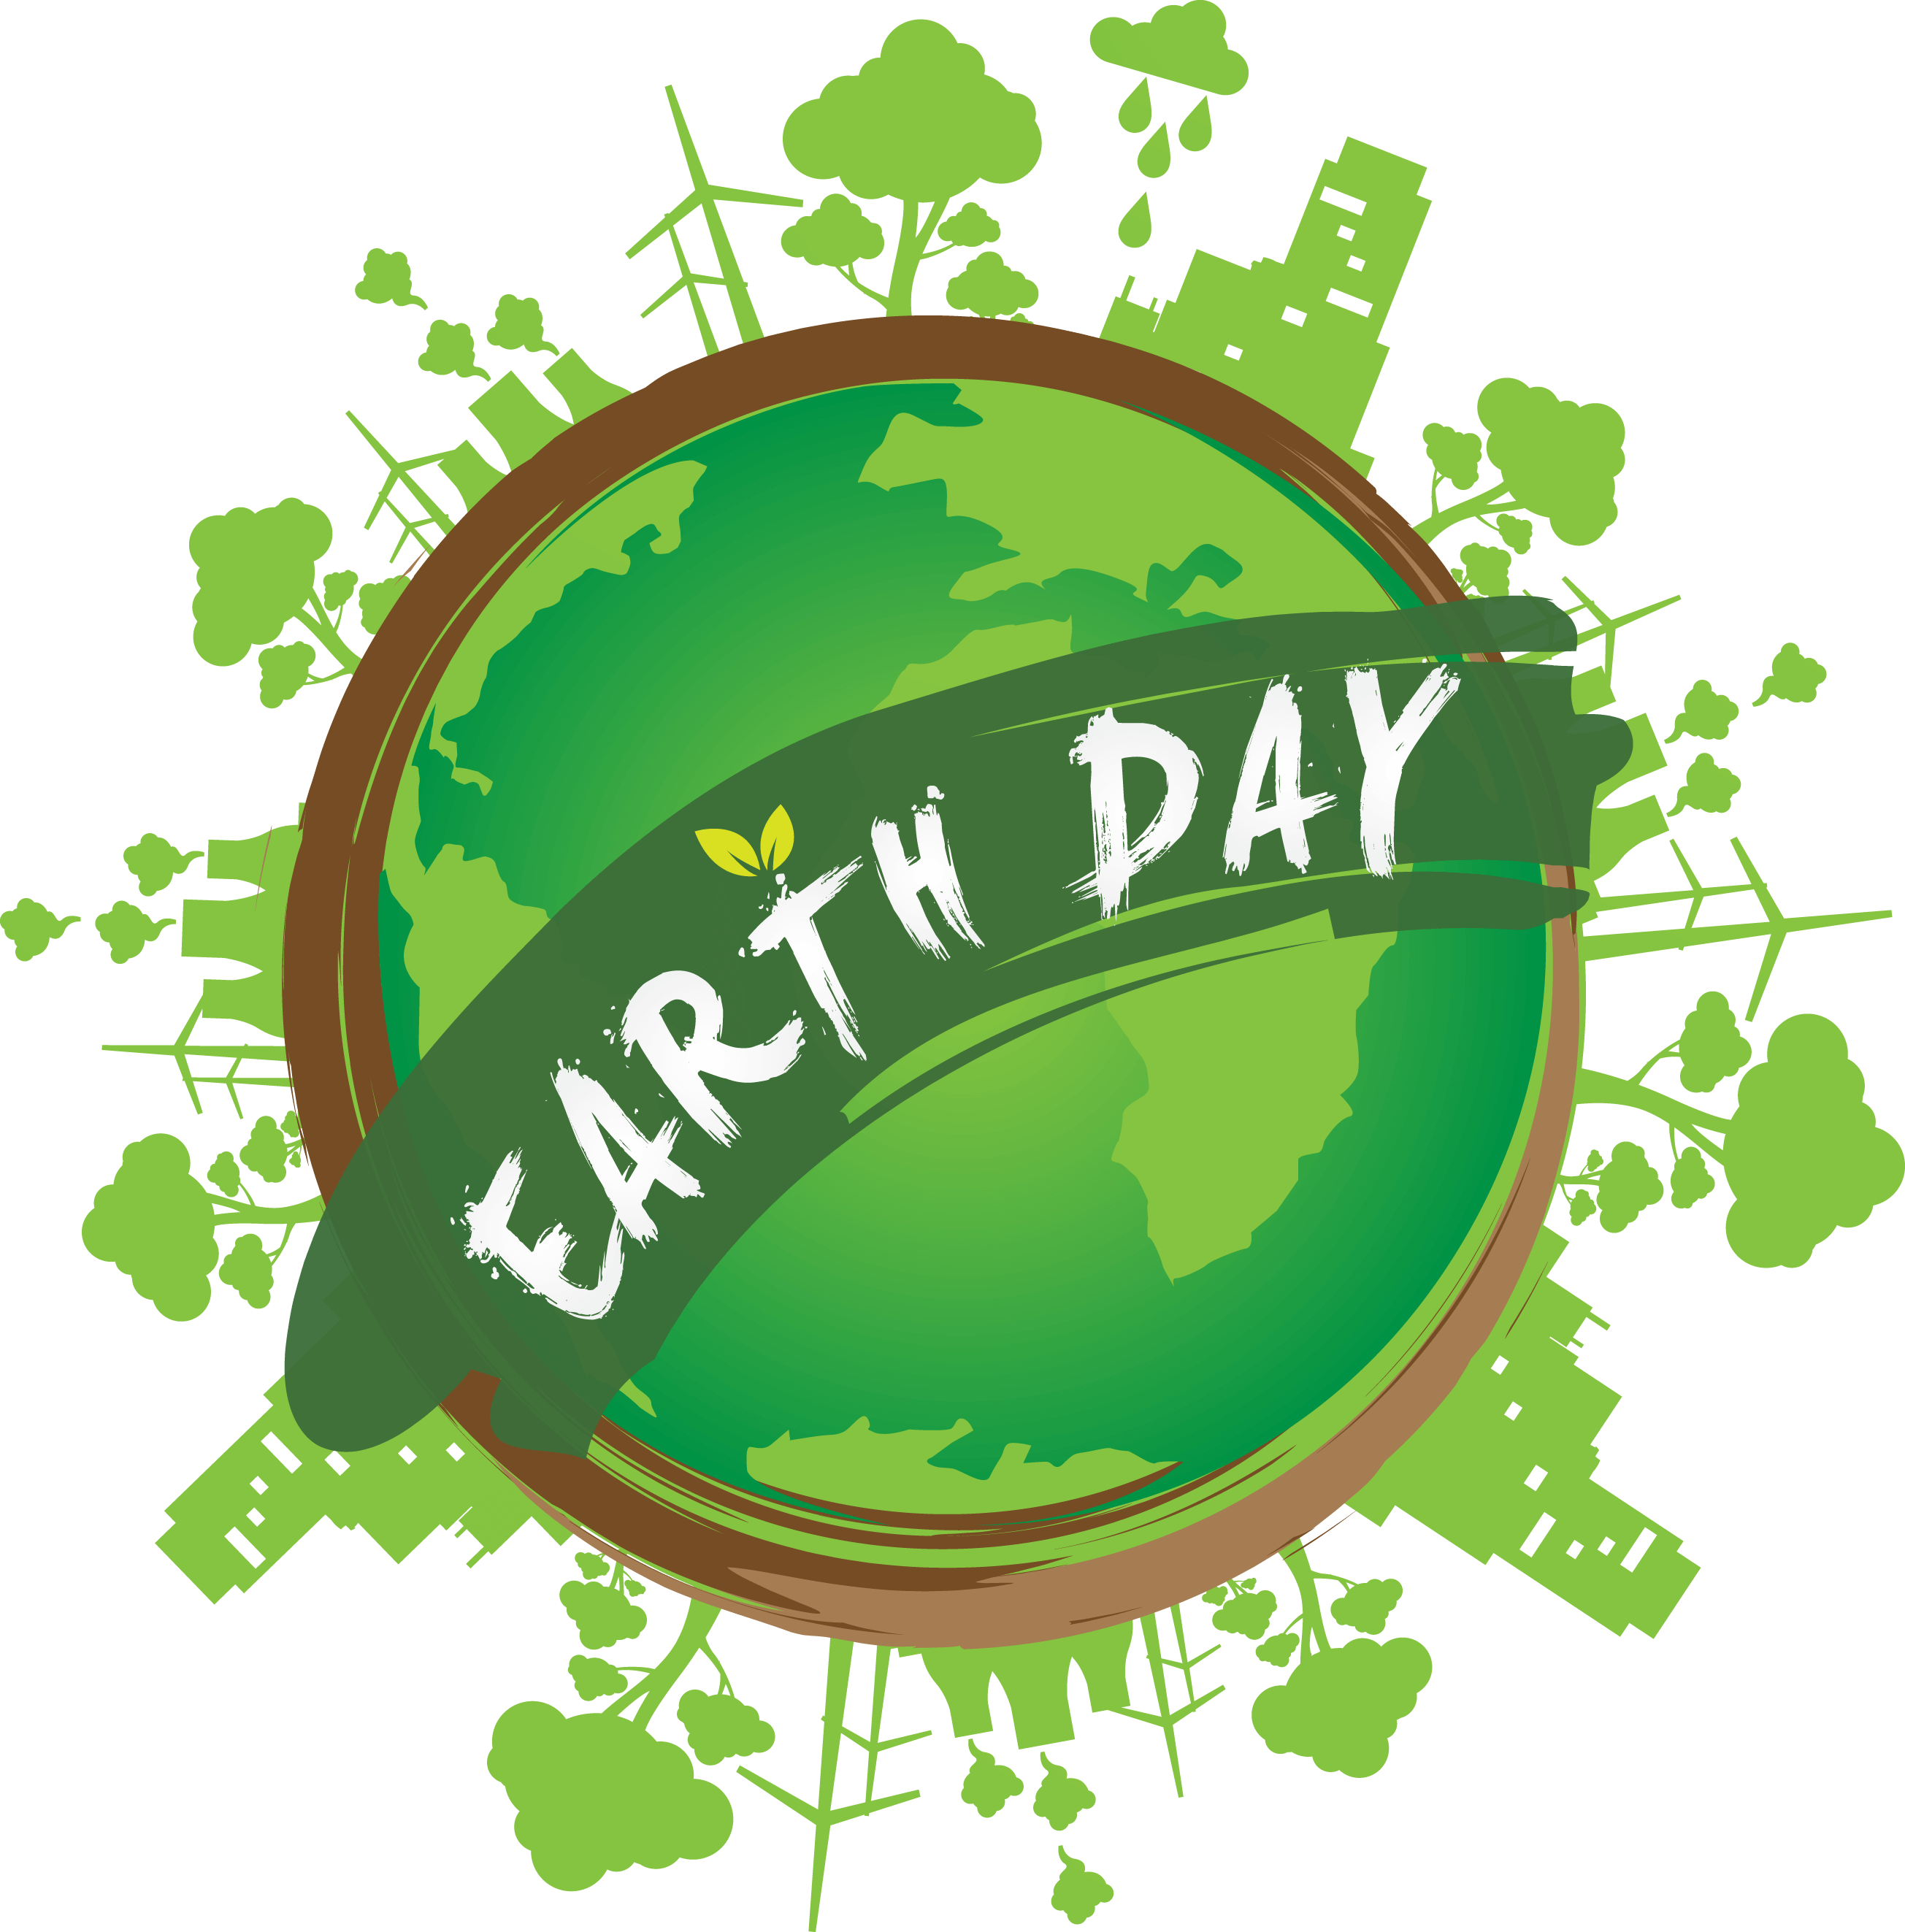 happy earth day vector image wallpaper